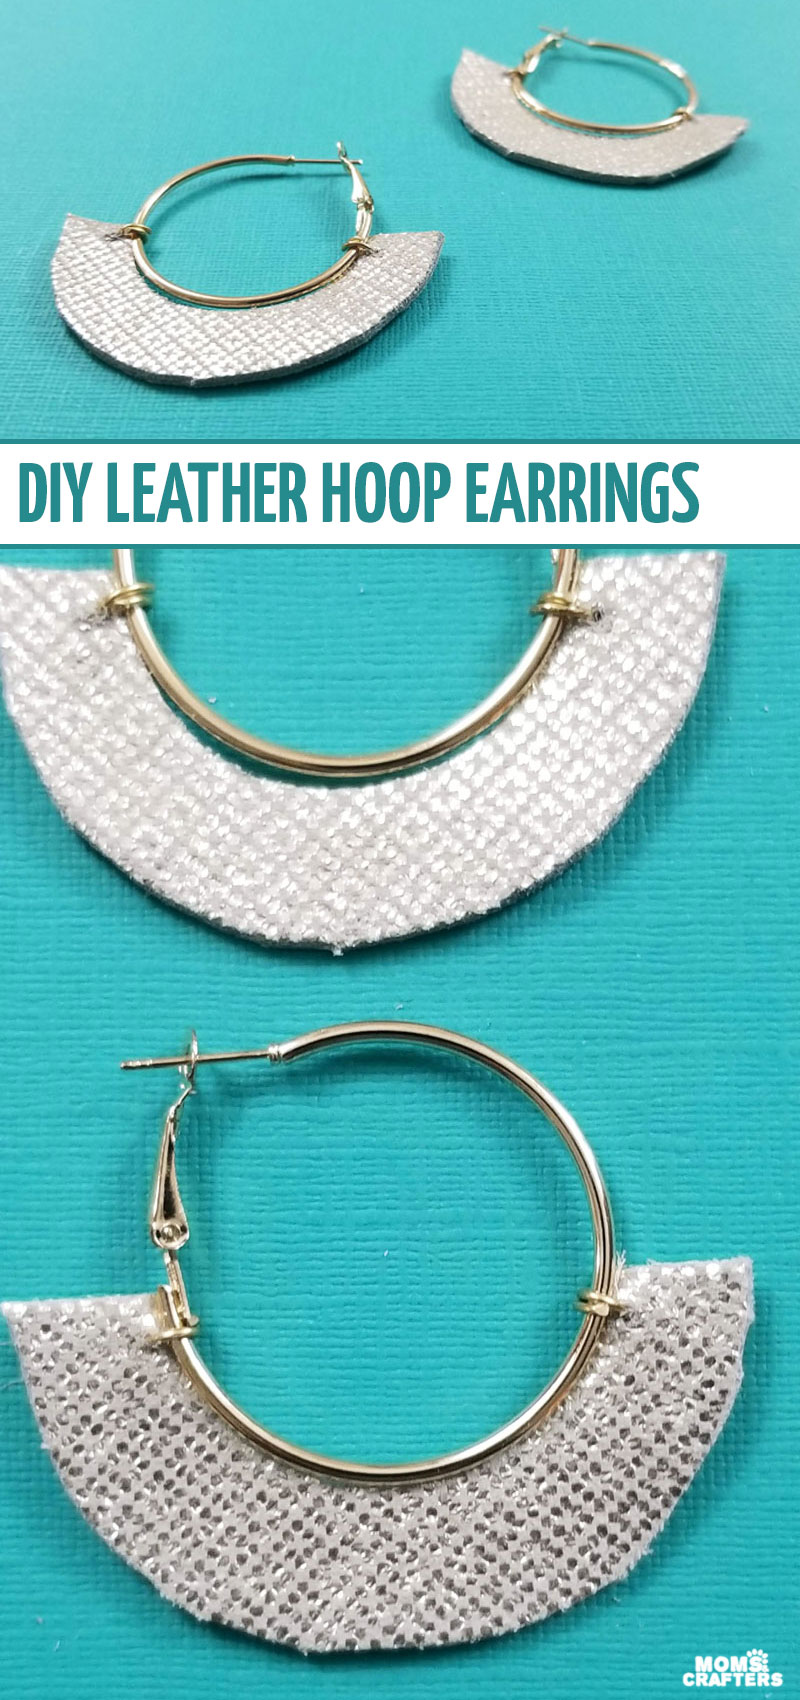 Make some cool leather hoop earrings - a fun and easy jewelry making project for beginners!